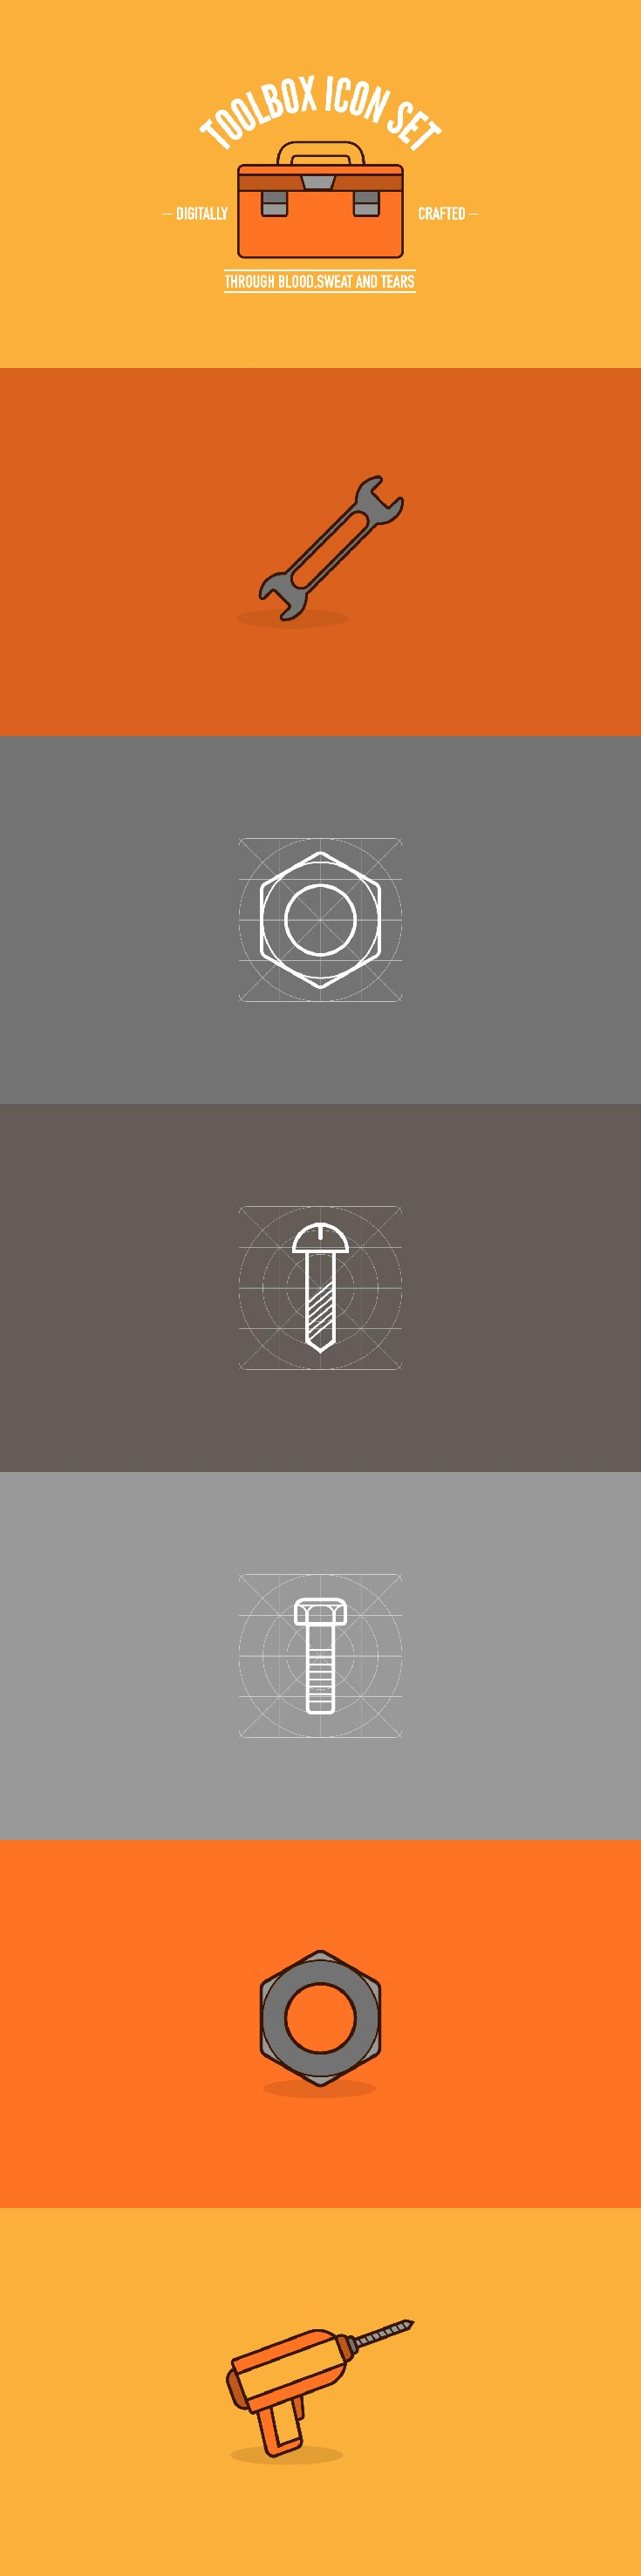 Free Toolbox Outline Icons Set